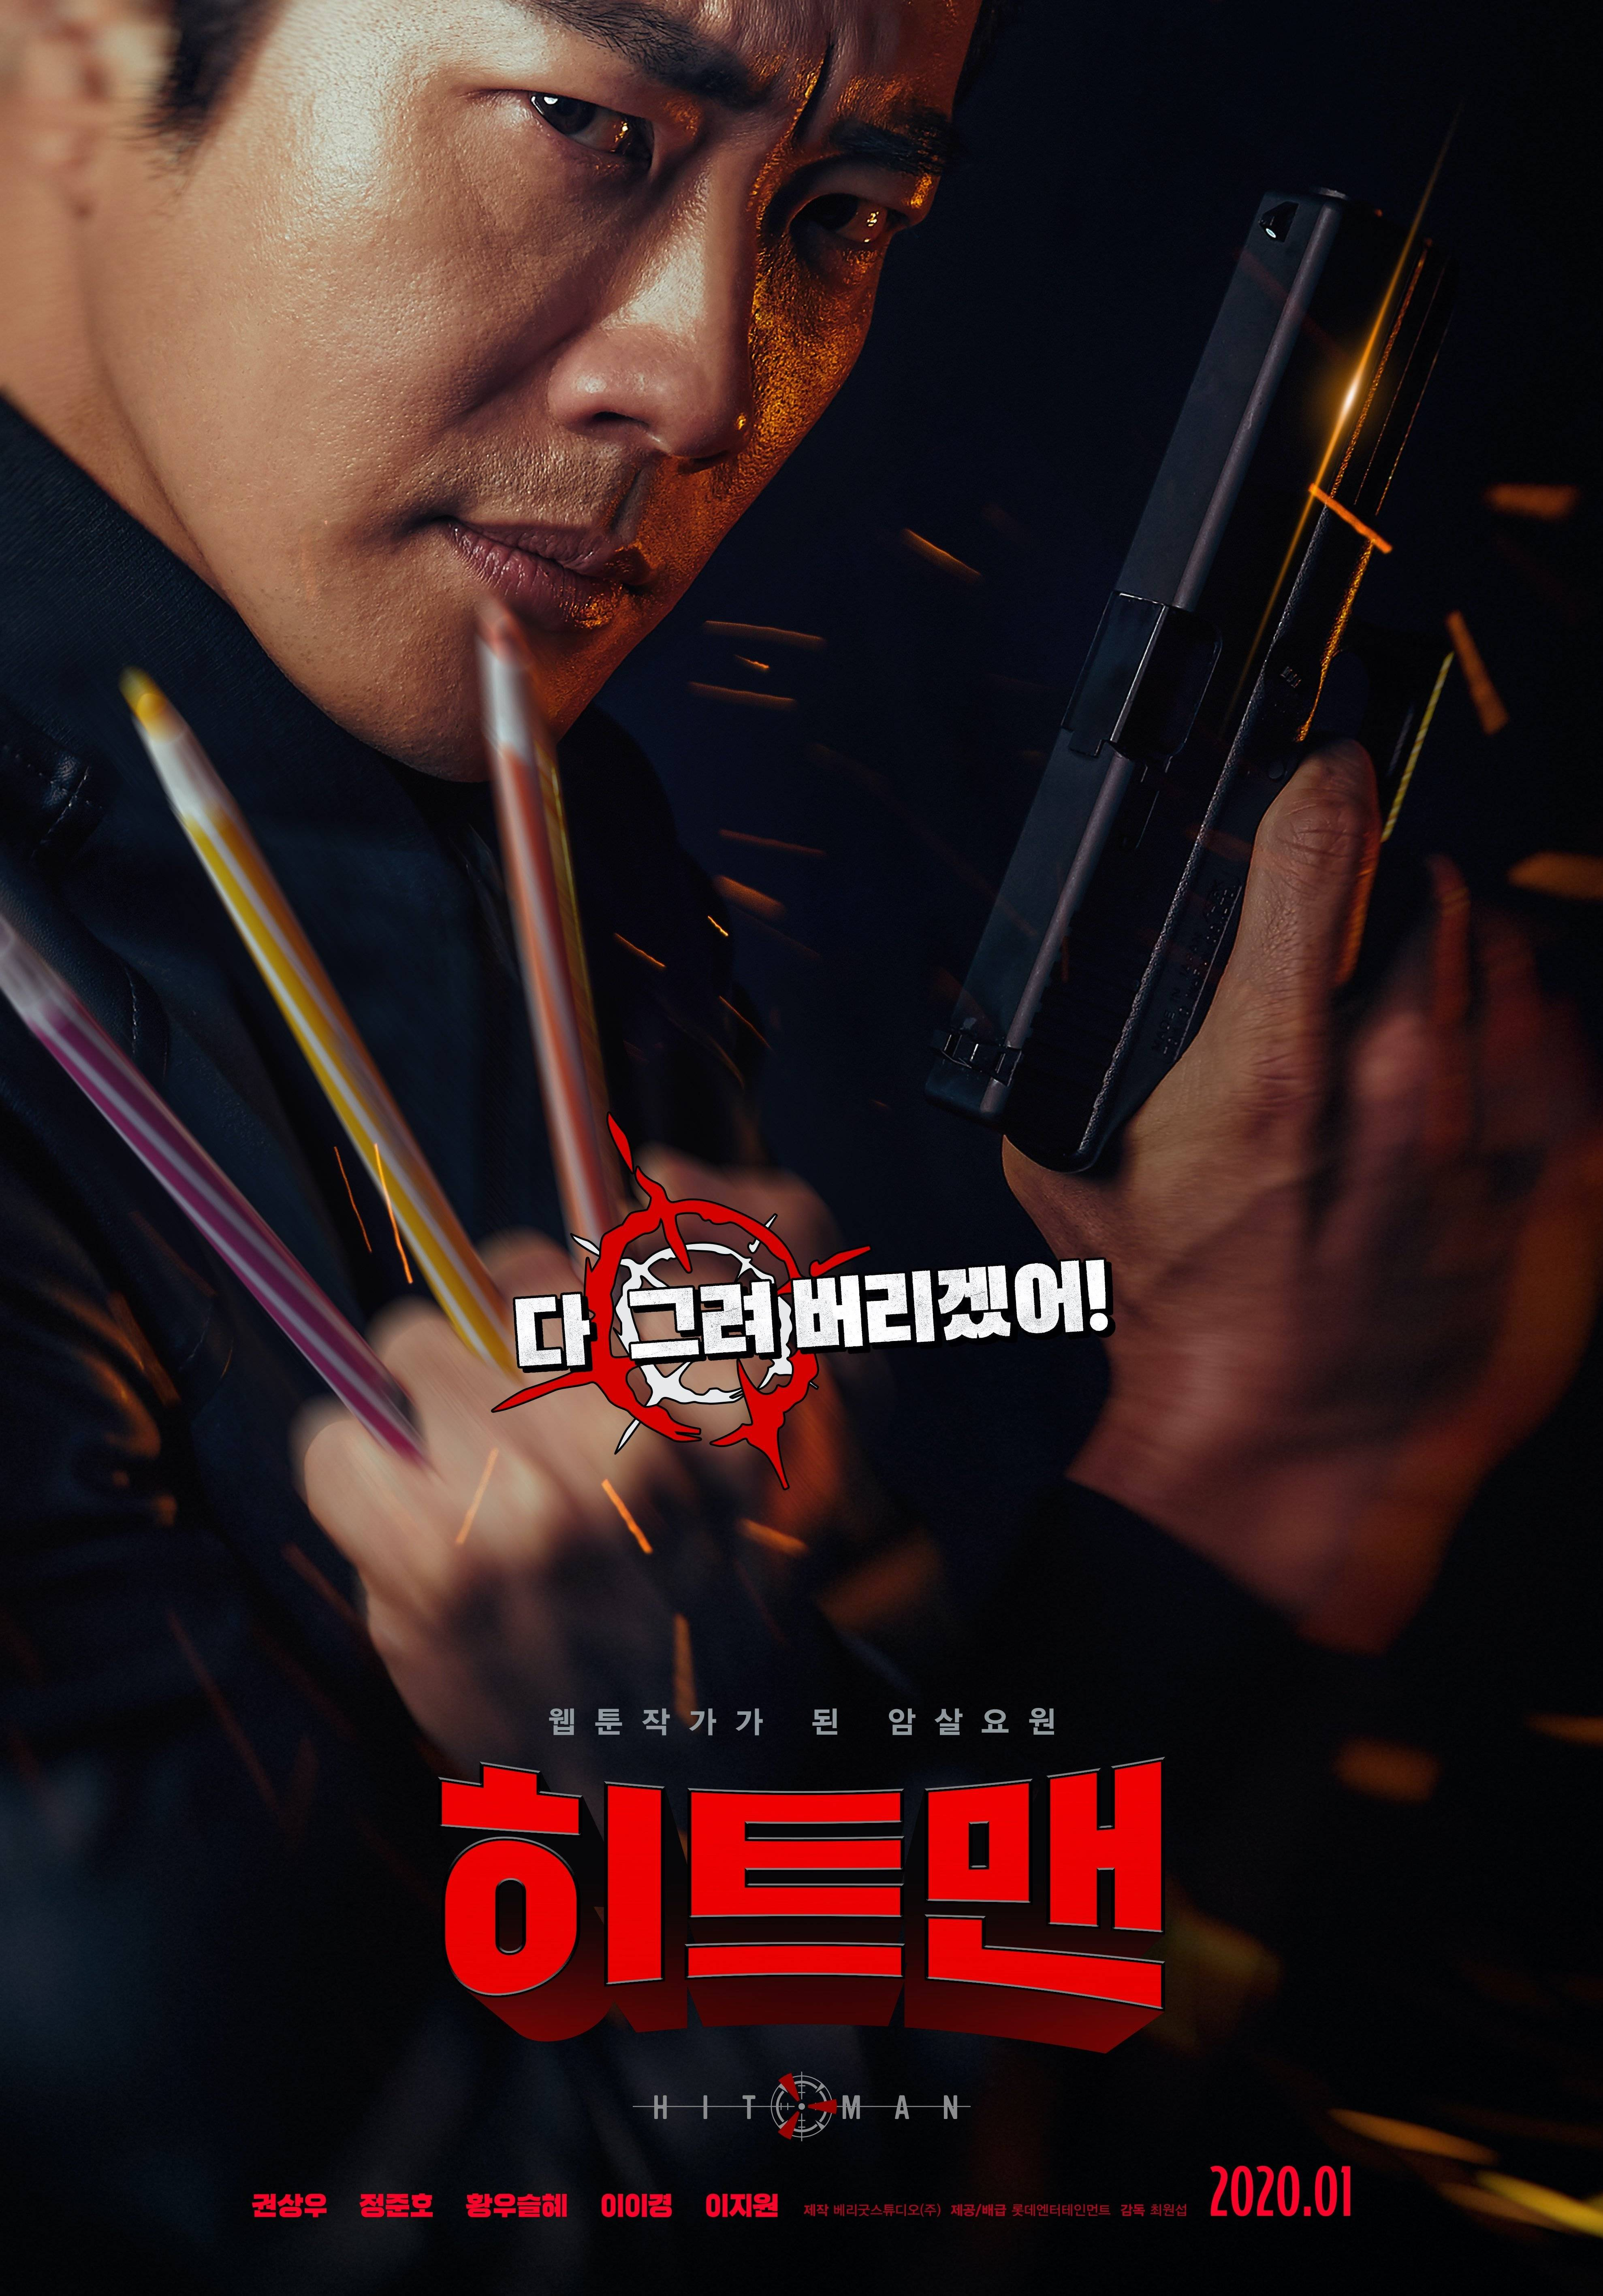 Hitman Agent Jun Korean Movie 2019 히트맨 Hancinema